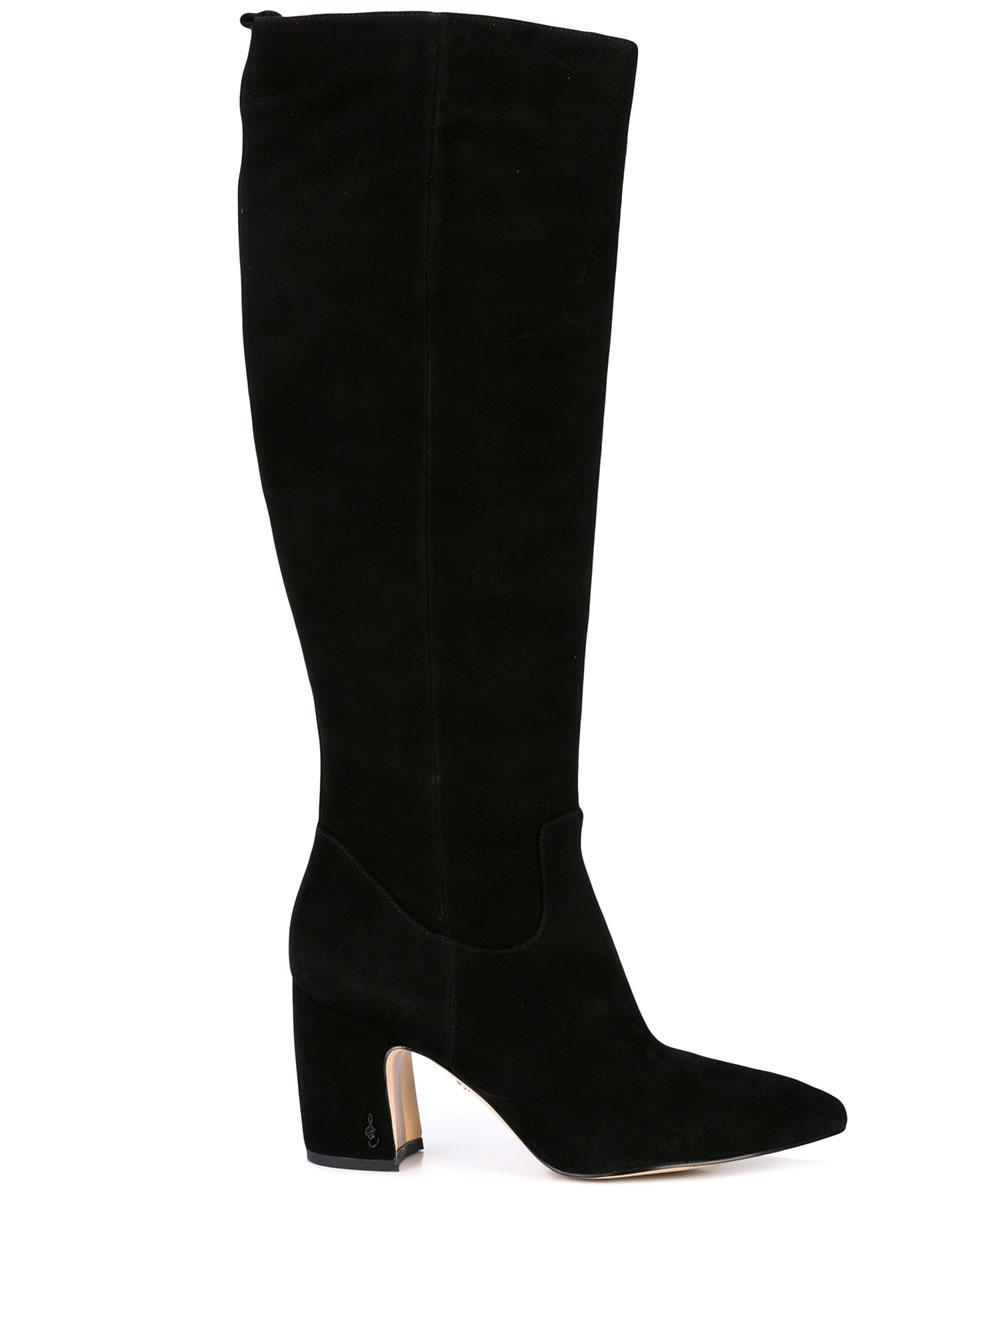 Tall Suede Boot With Block Heel Item # HAI-SUE-F19